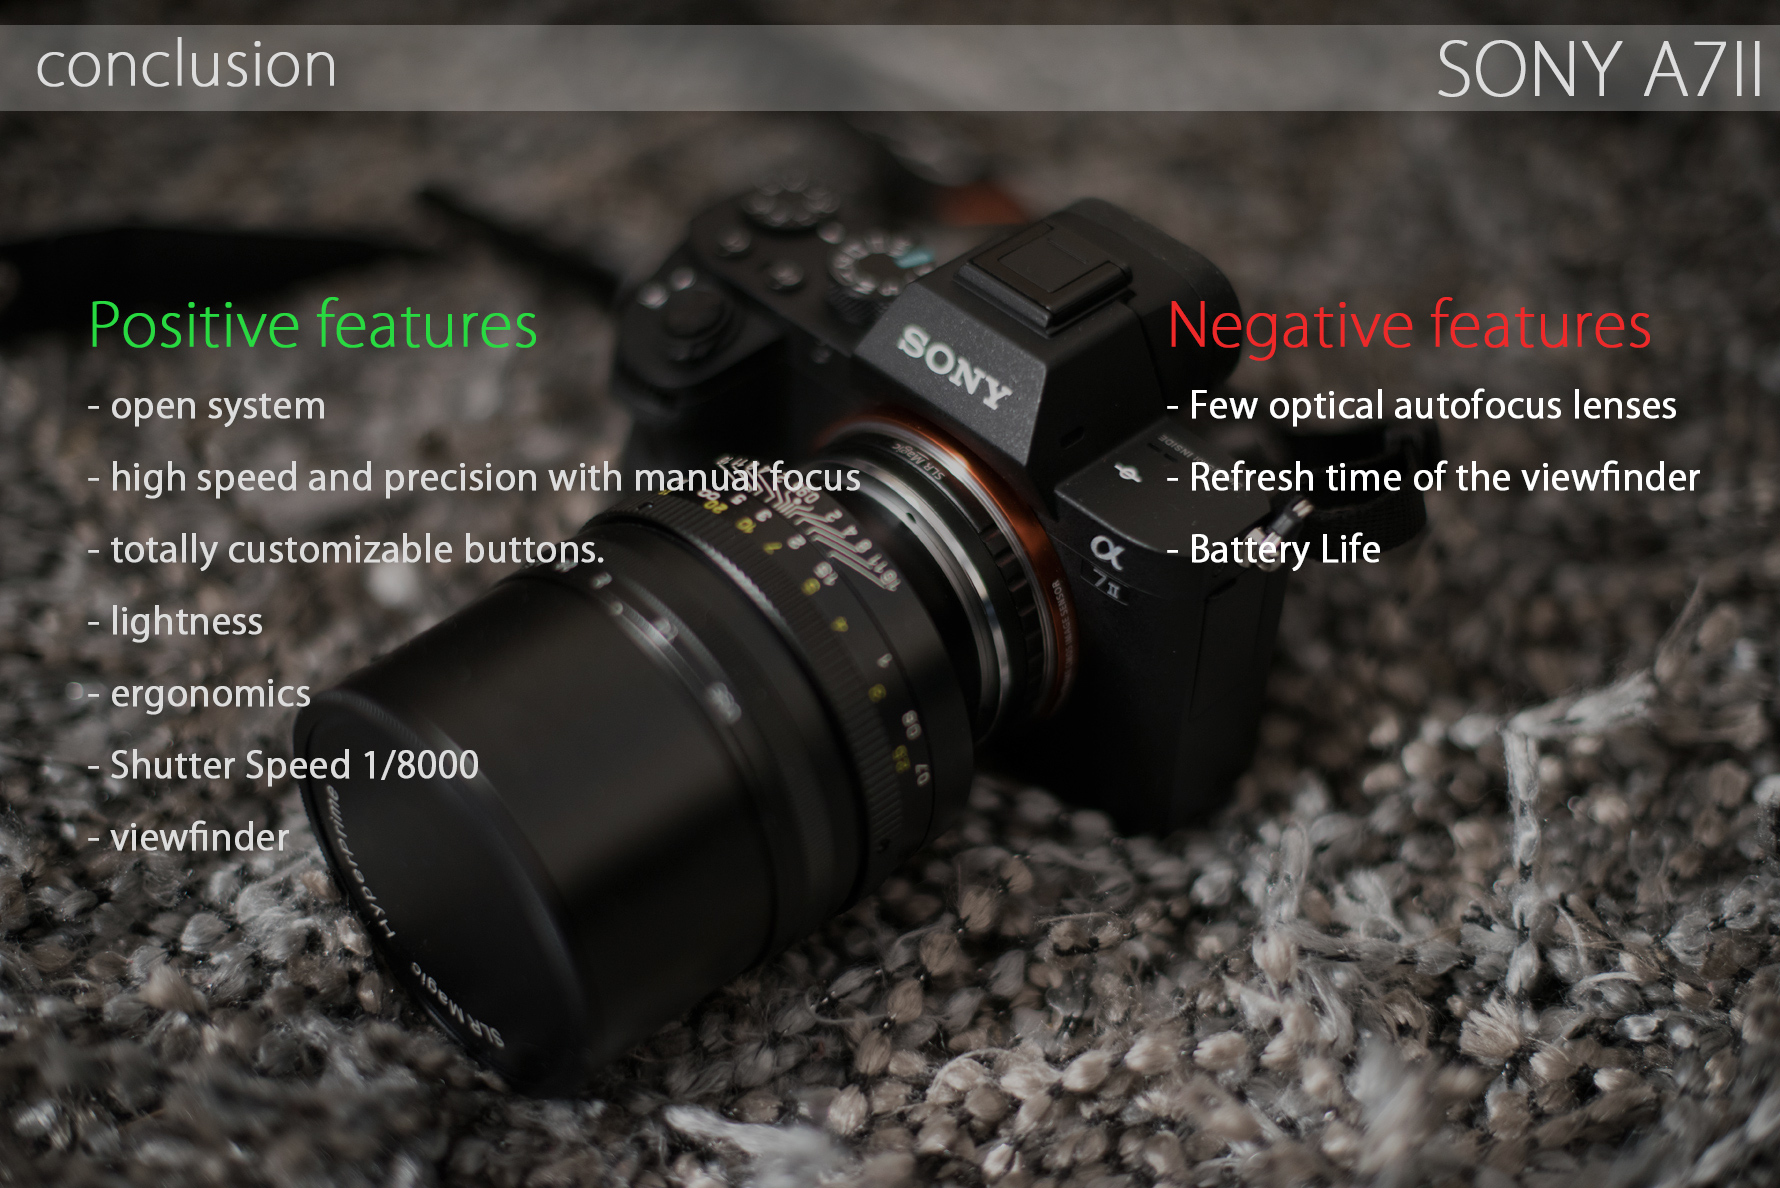 conclusion : Positive features: - open system - high speed and precision with manual focus - totally customizable buttons. - lightness - ergonomics - Shutter Speed 1/8000 - viewfinder Negative features - Few optical autofocus lenses - Refresh time of the viewfinder - Battery Life